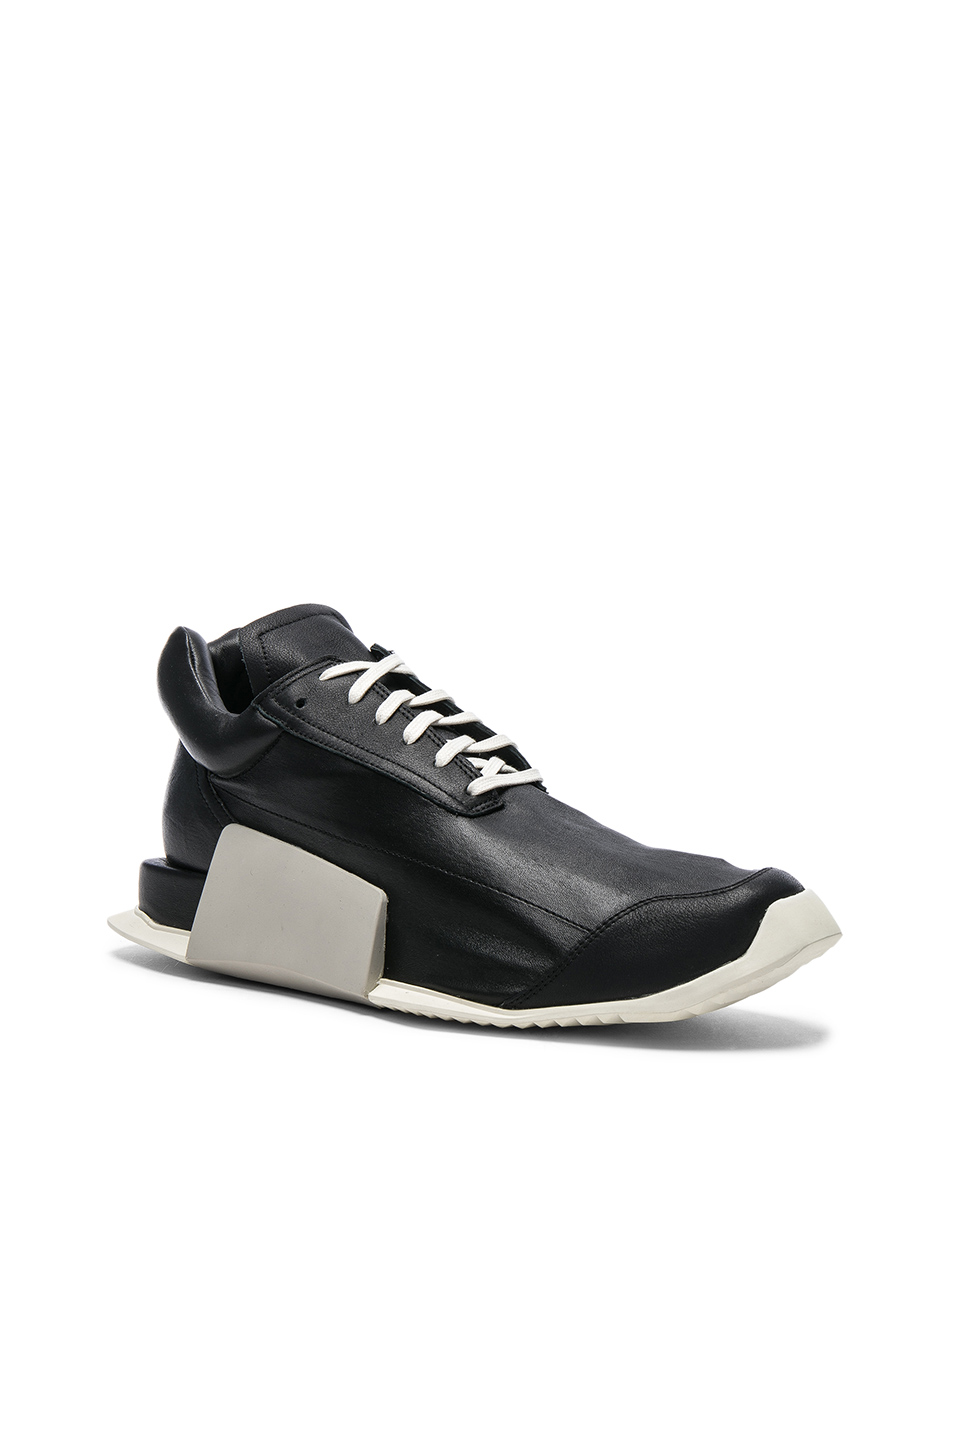 Rick Owens x Adidas Level Runner Boosts in Black